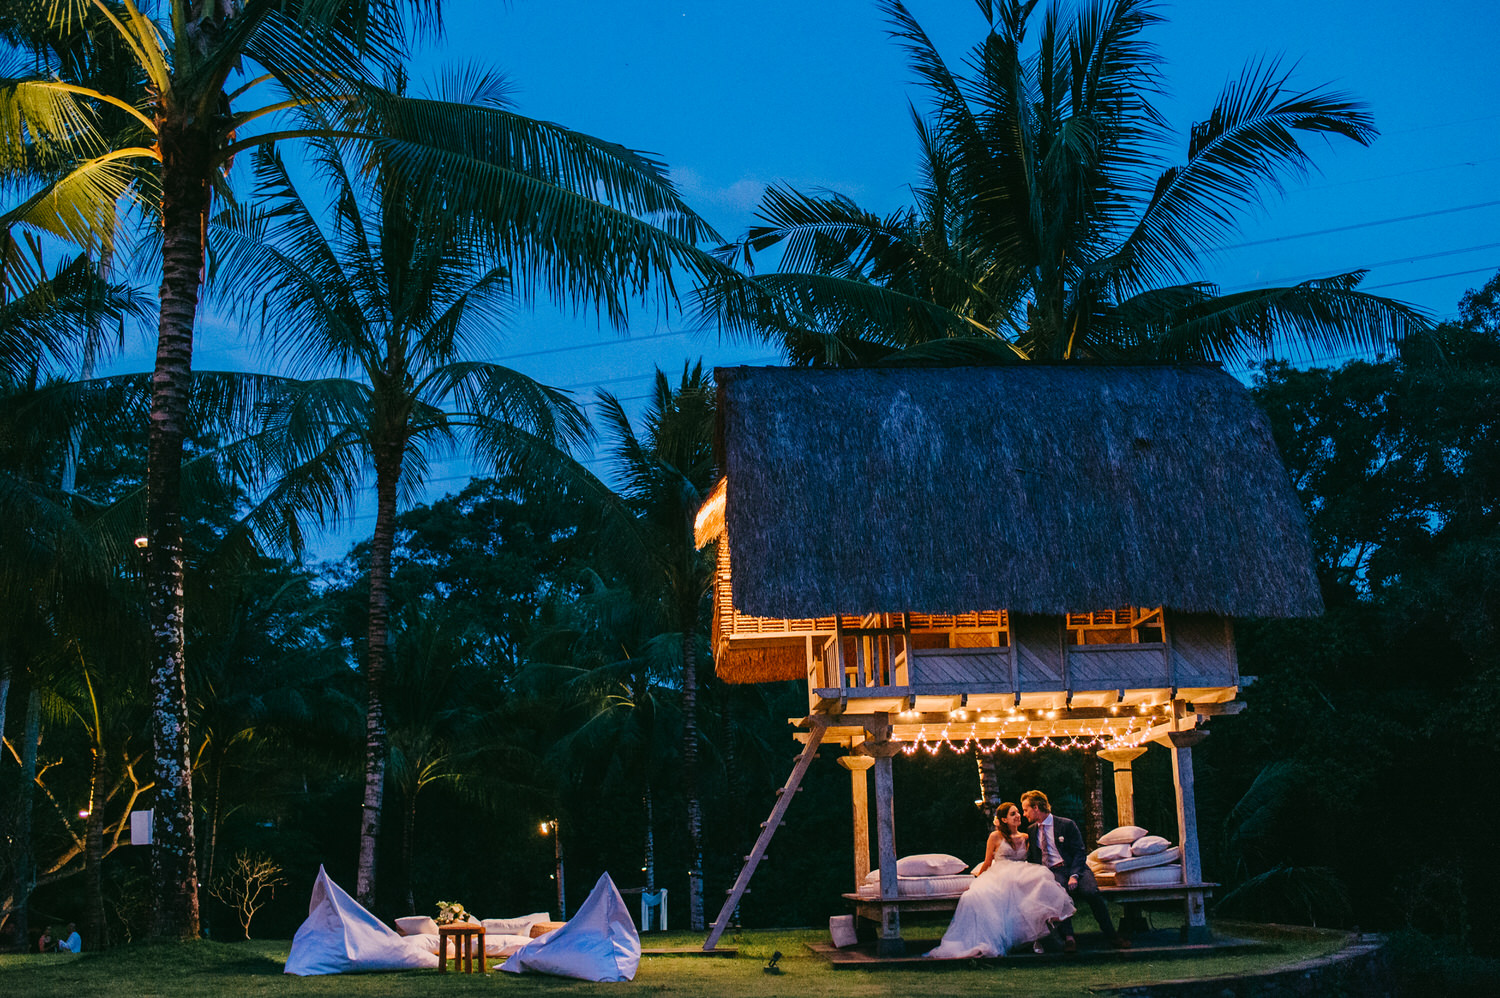 bali-wedding-destination-wedding-in-bali-bali-photographer-the-sanctuary-villa-profesional-bali-wedding-photographer-diktatphotography-clement-armine-wedding-73